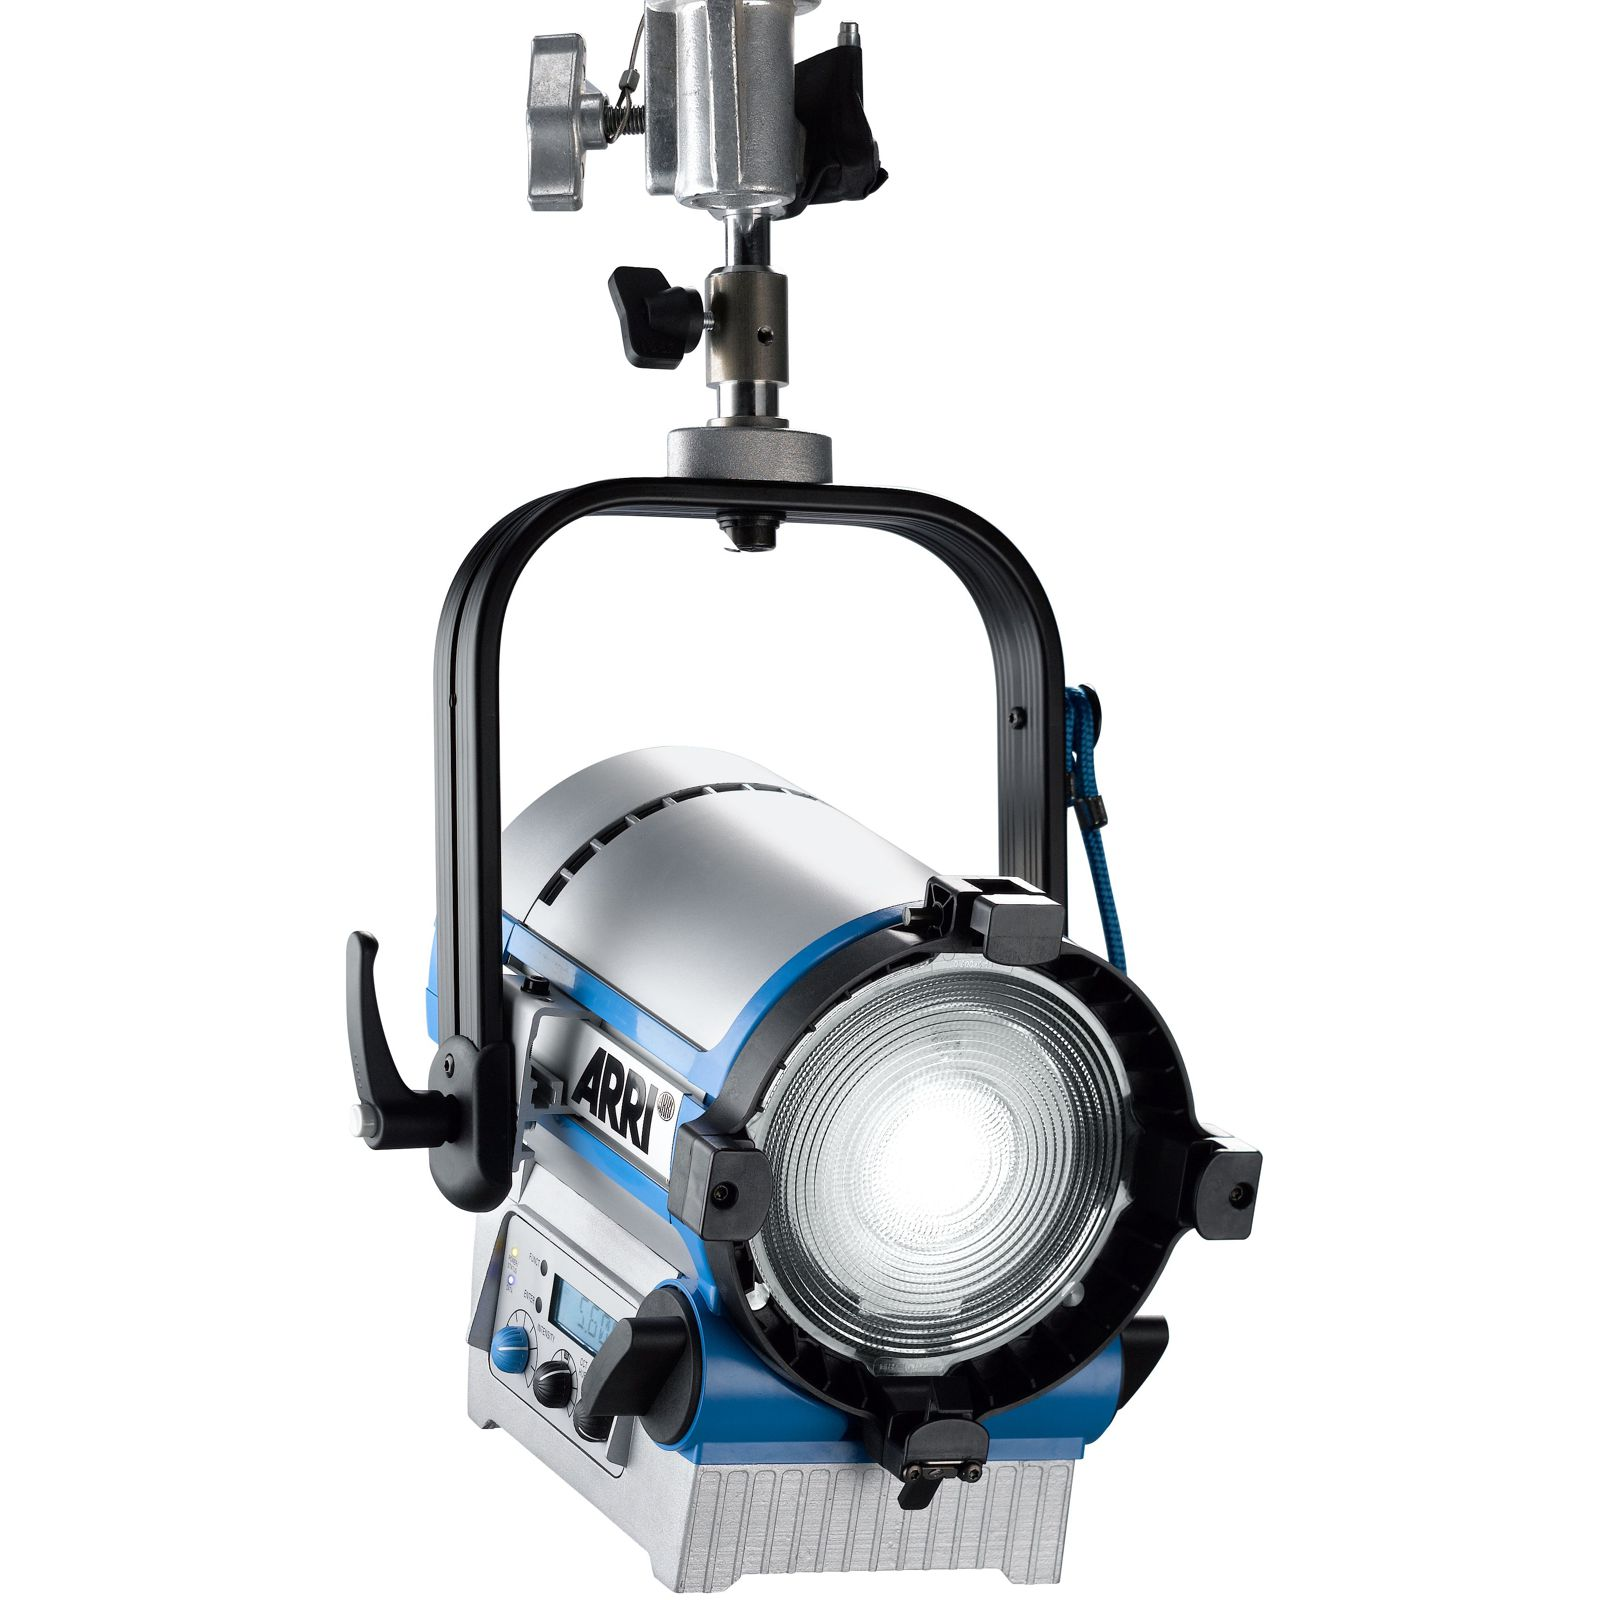 Прибор ARRI L5-DT L0.0001990 (Stand-Mount, Blue/Silver, 3 m Cable, Schuko Connector)